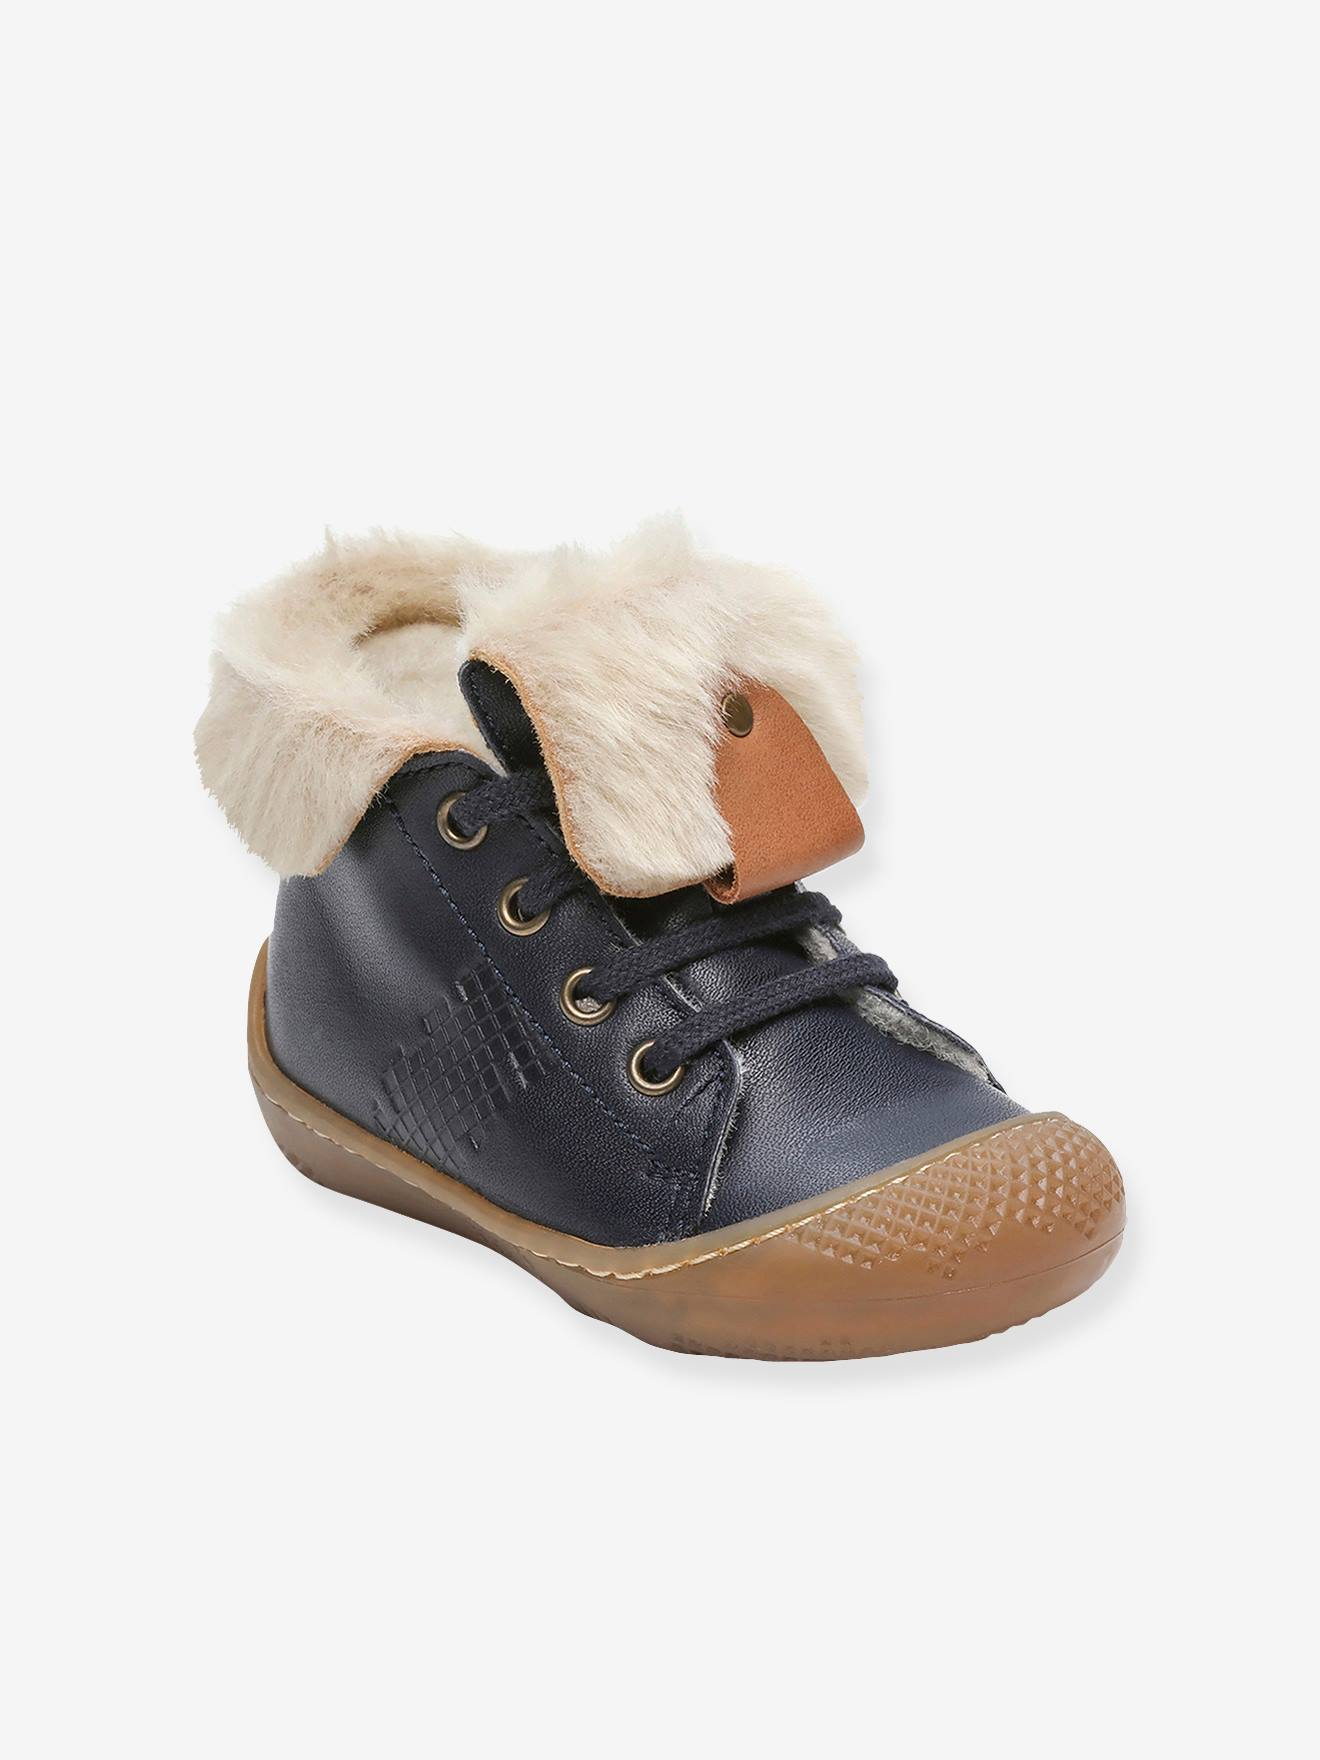 Leather Ankle Boots, Fur Lined, for